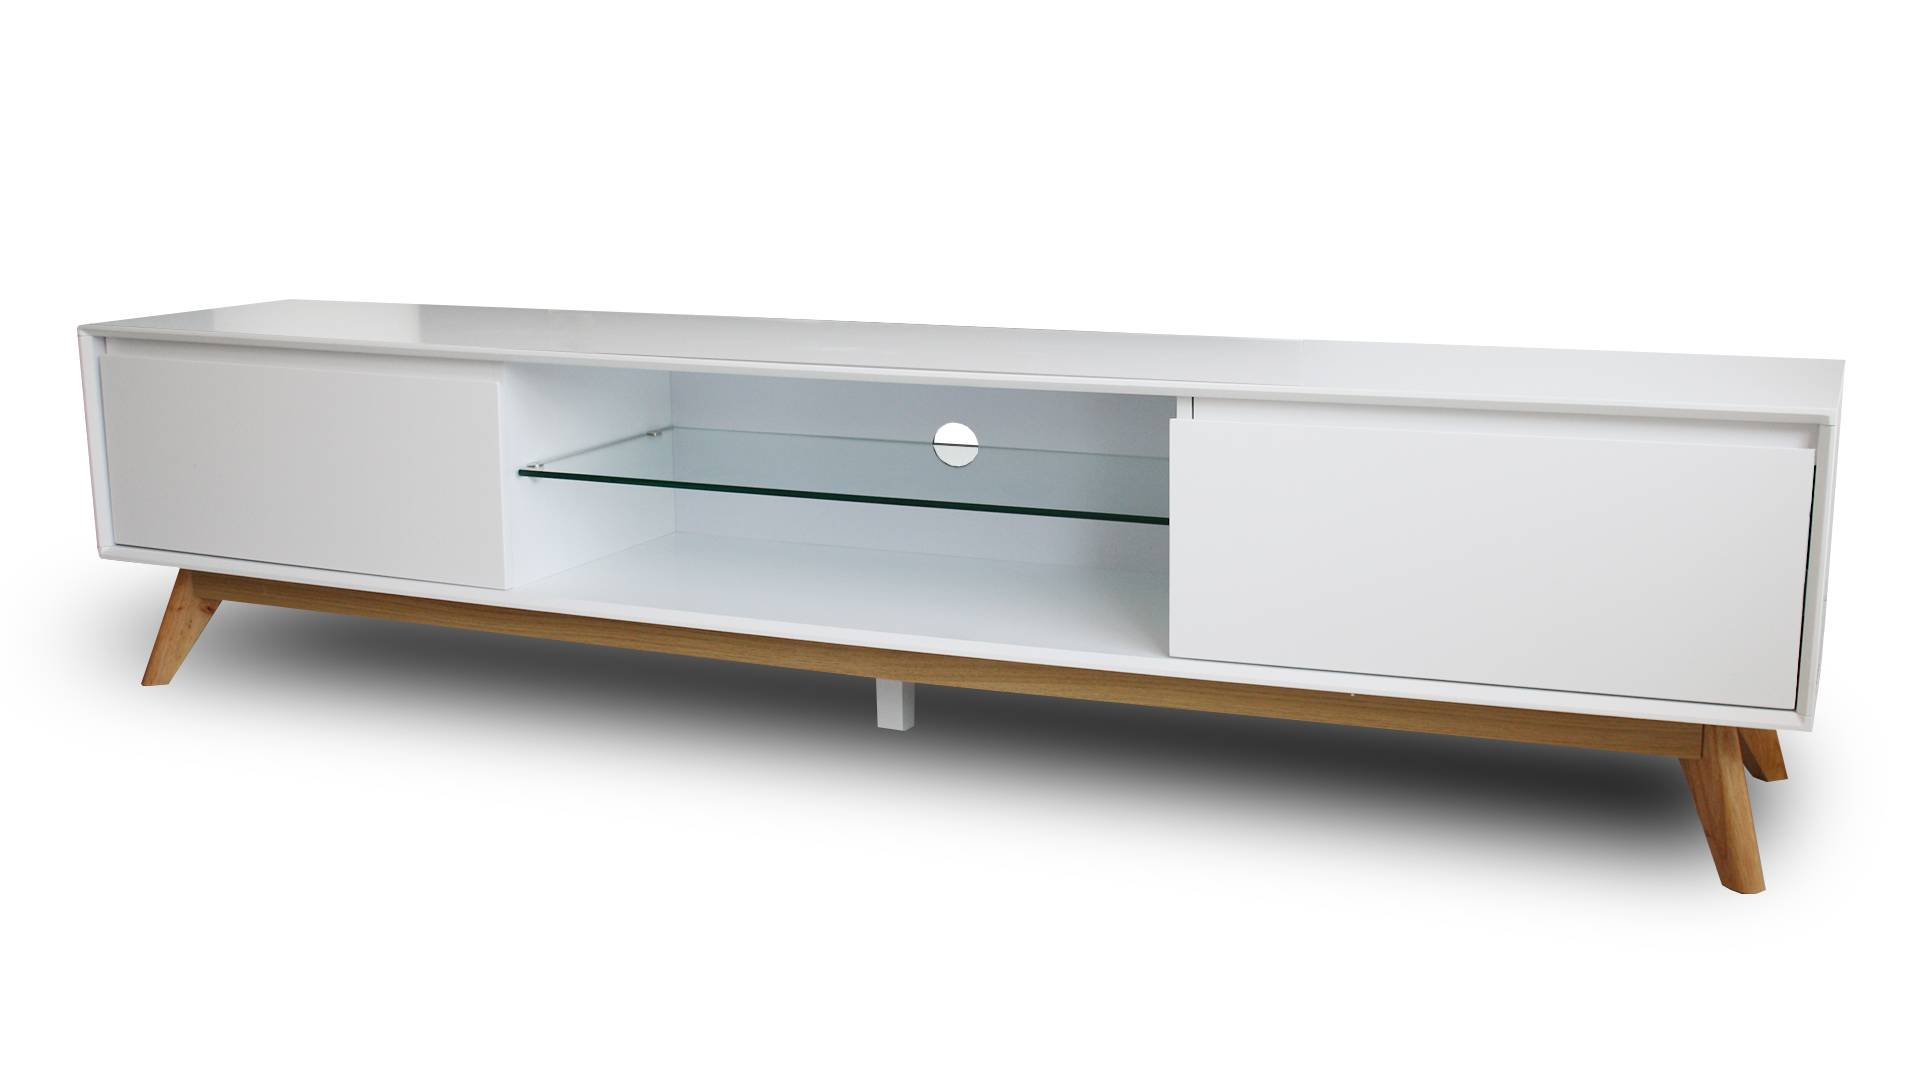 MobilierMoss Mueble TV blanco y patas de madera - Svartan